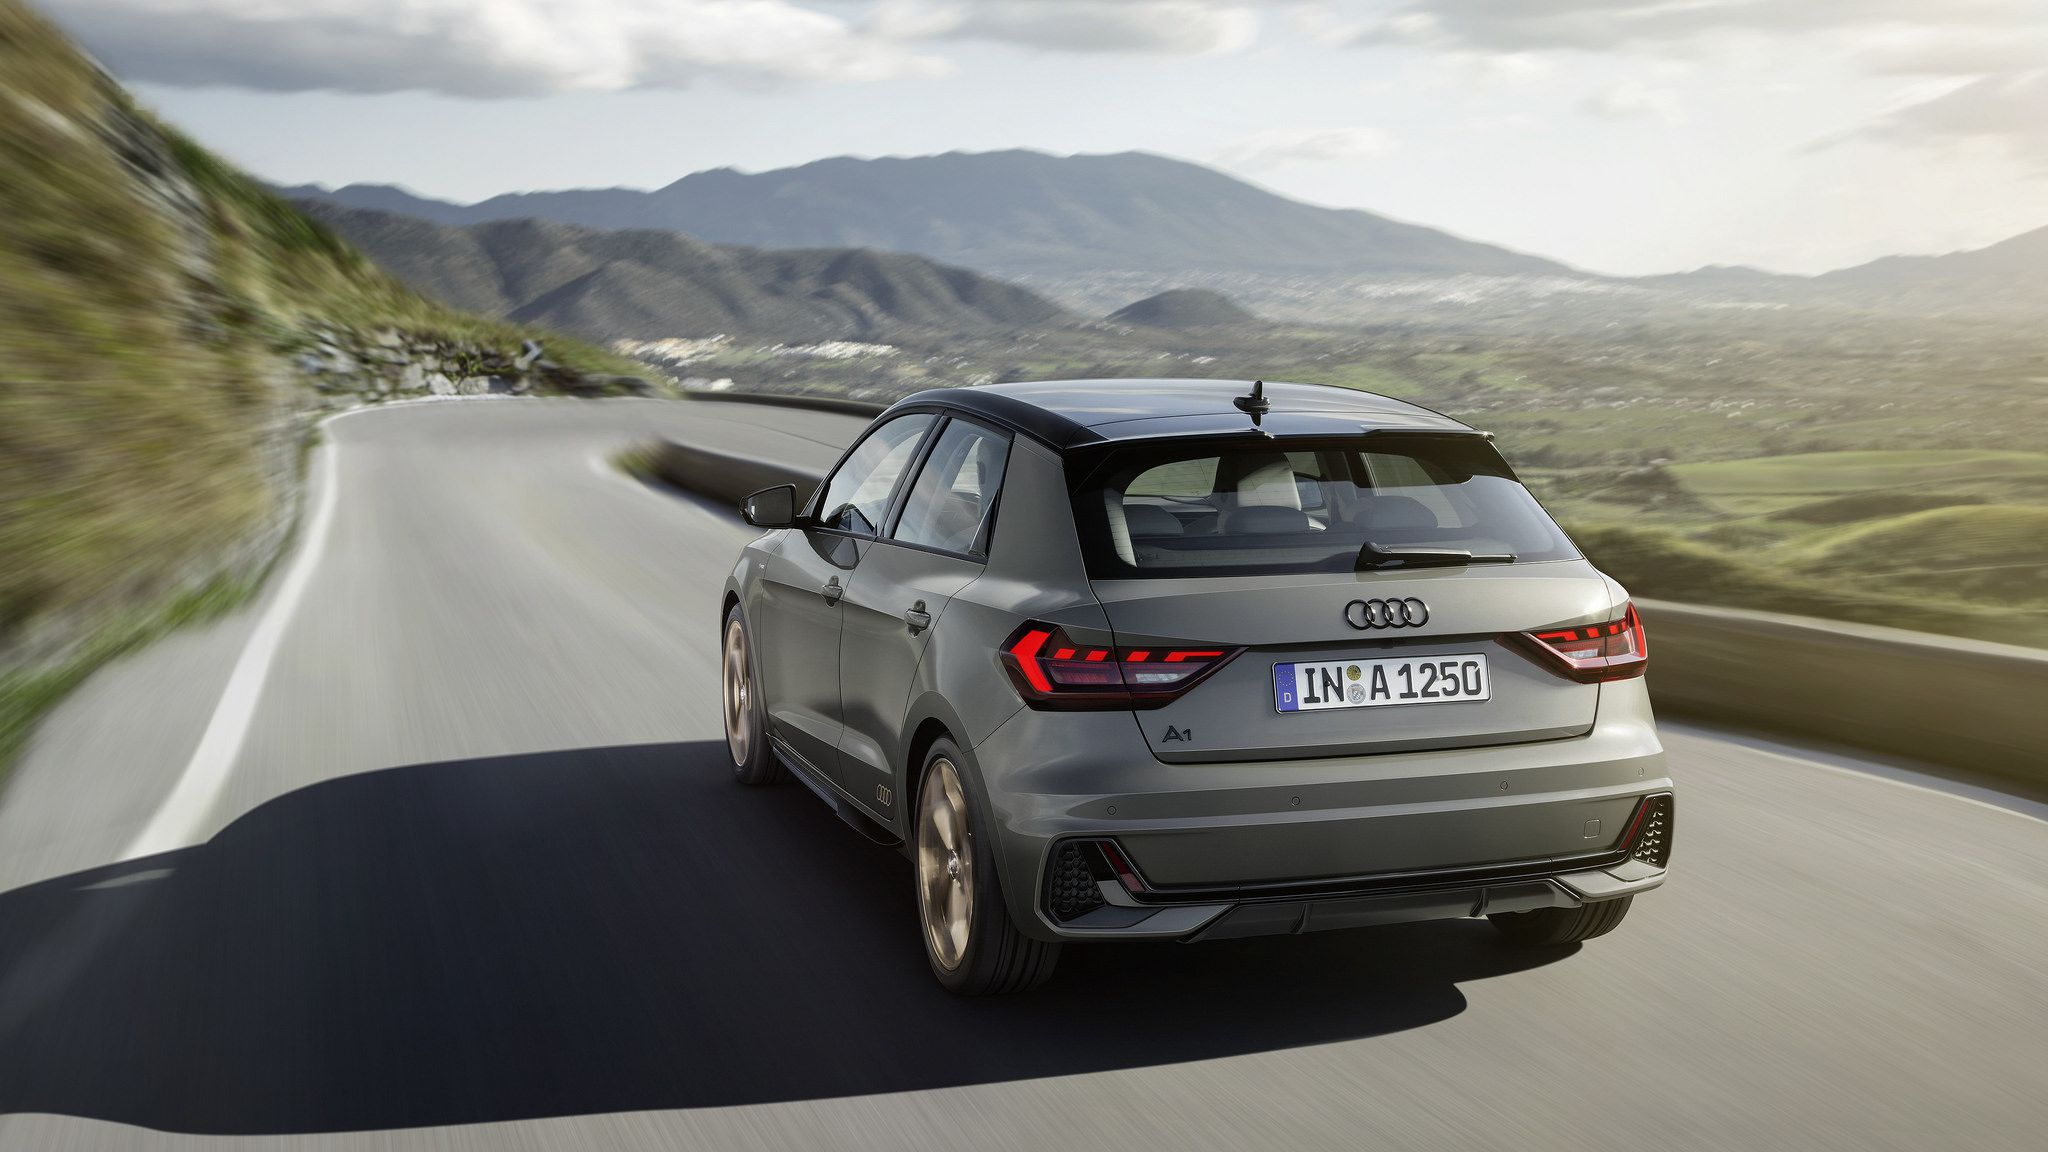 Car Black And Green Wallpaper 15 Images About 2019 Audi A1 Sportback